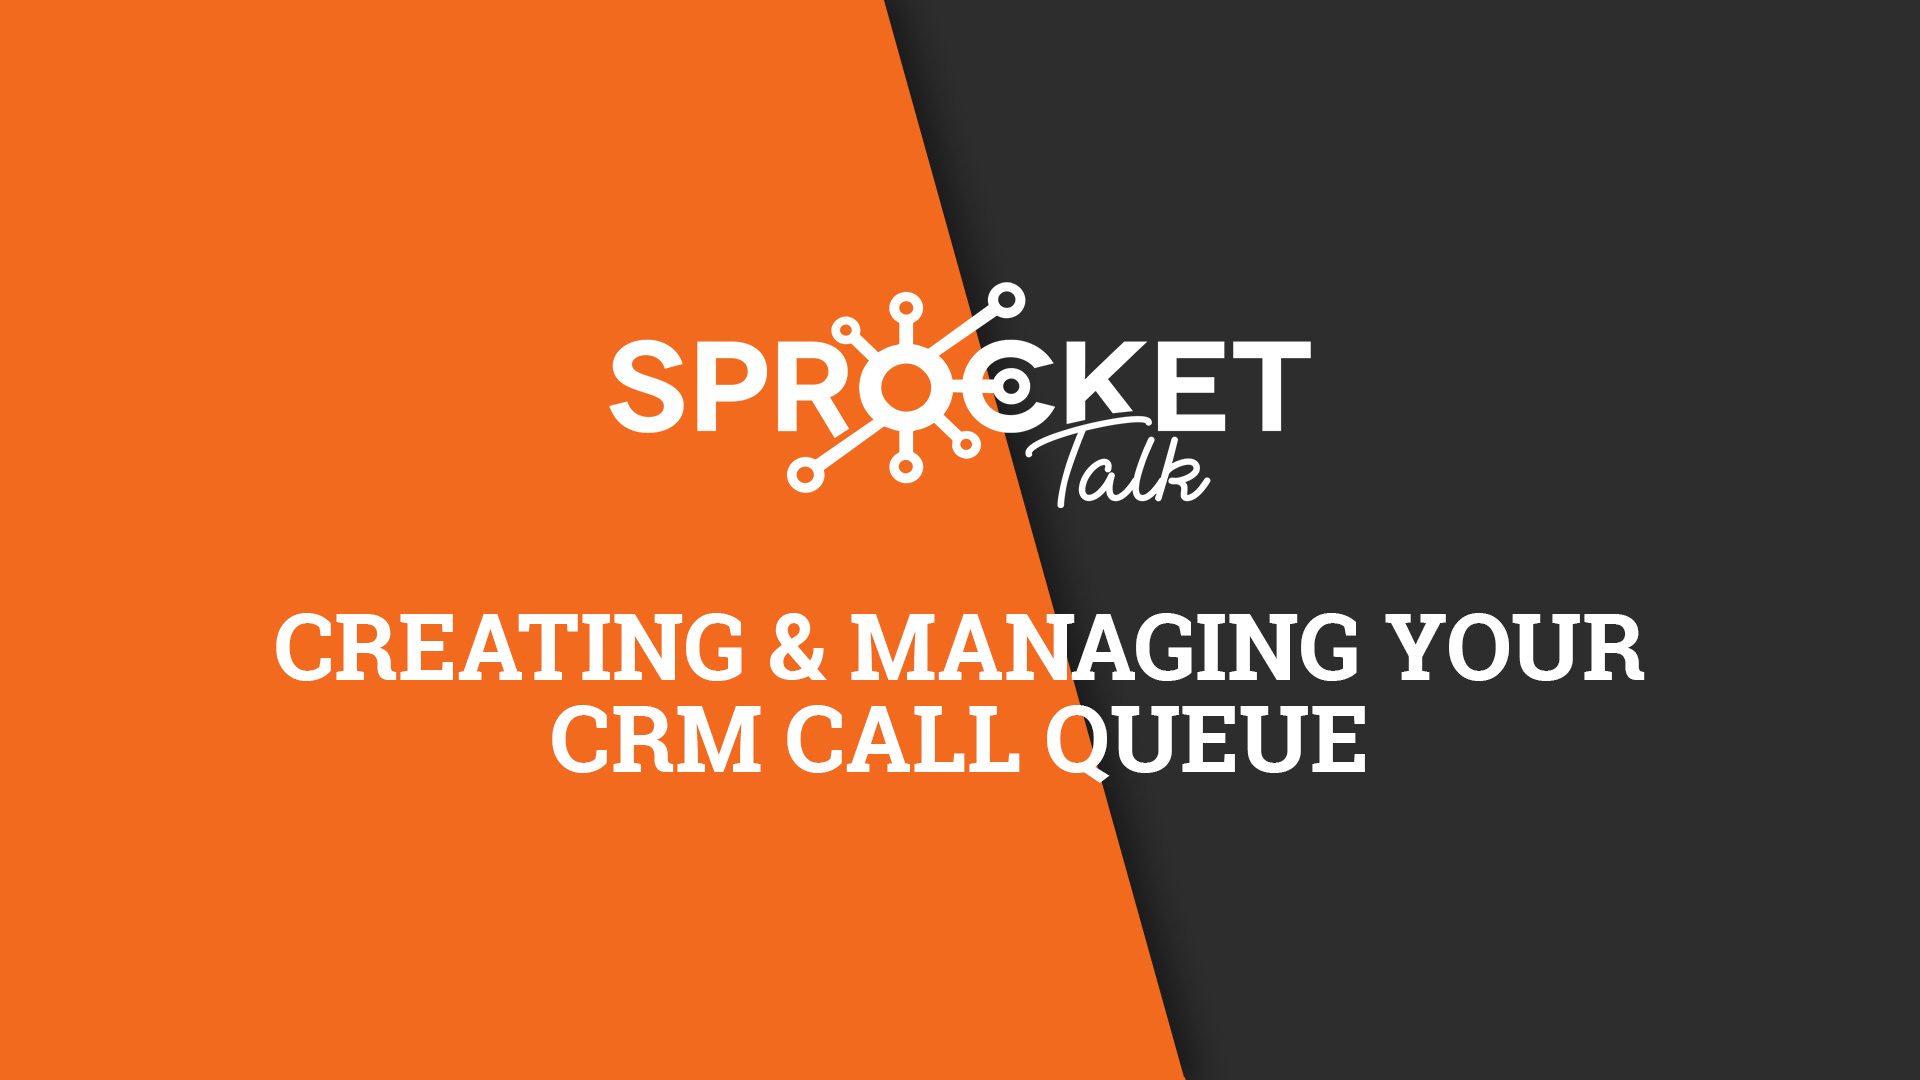 Creating & Managing Your CRM Call Queue